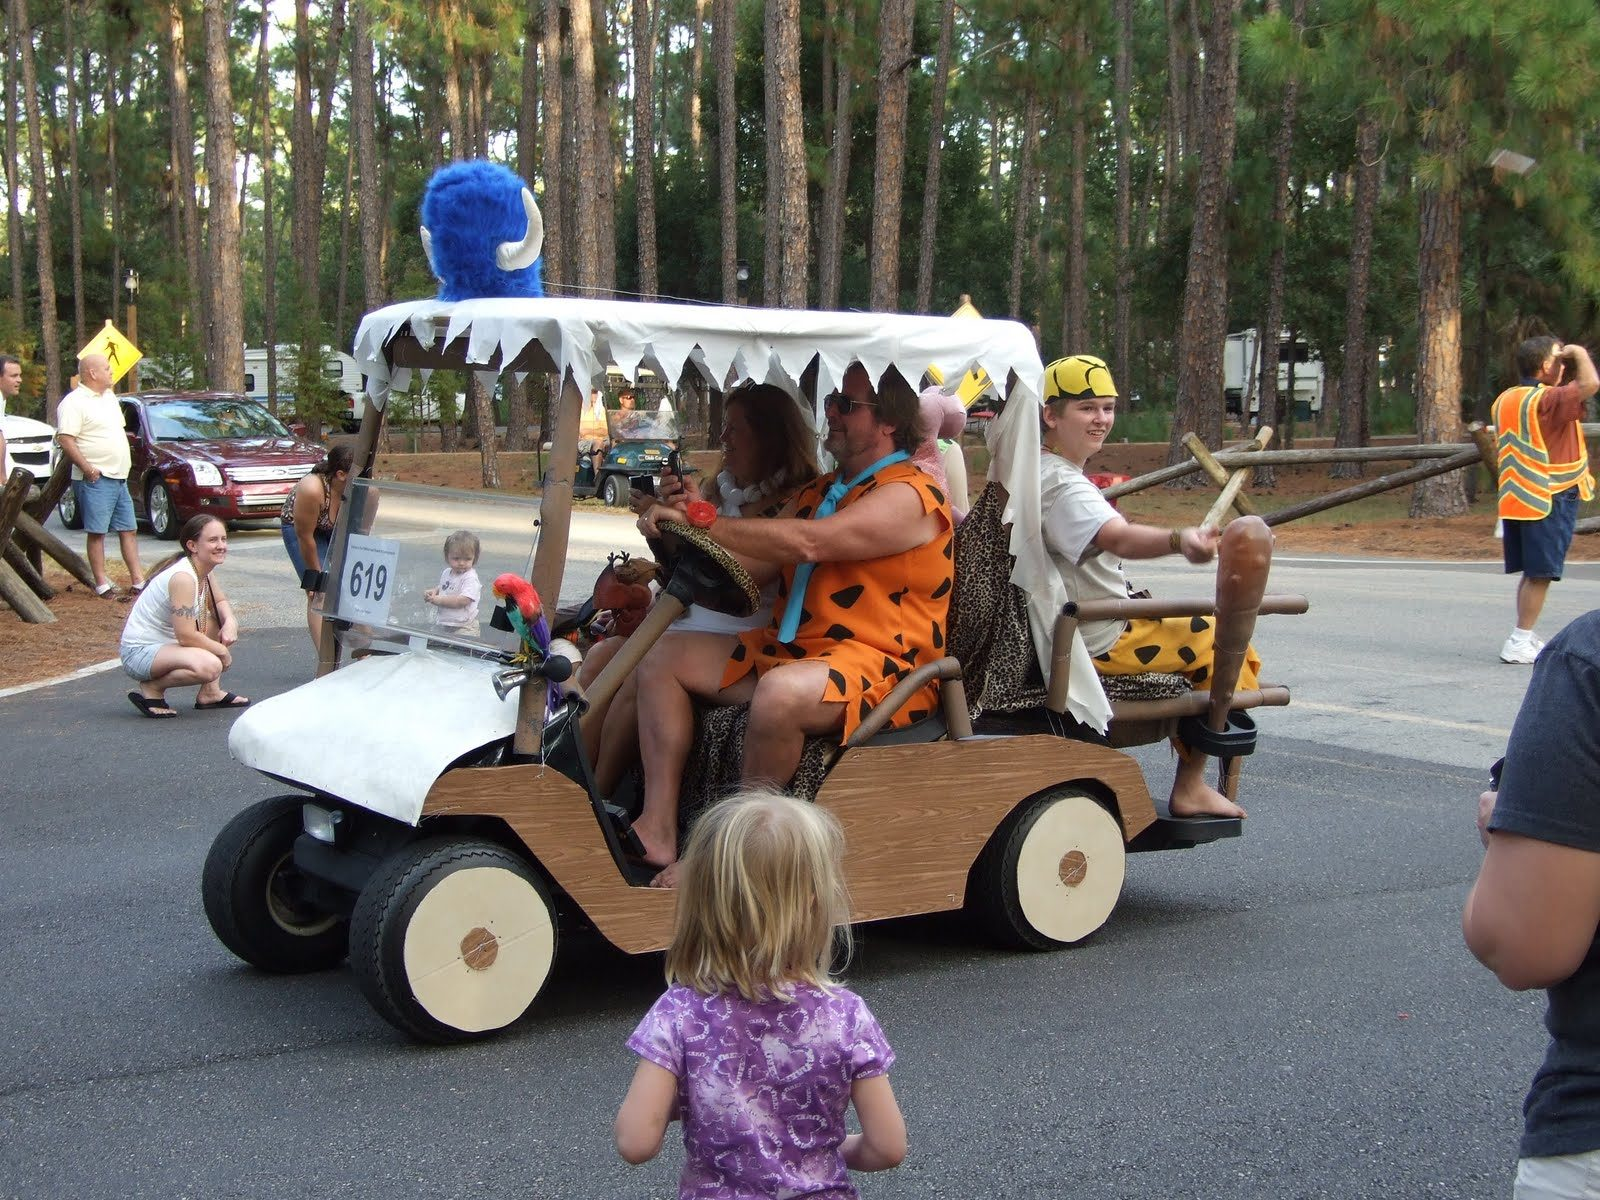 golf cart decorated as The Flintstones car